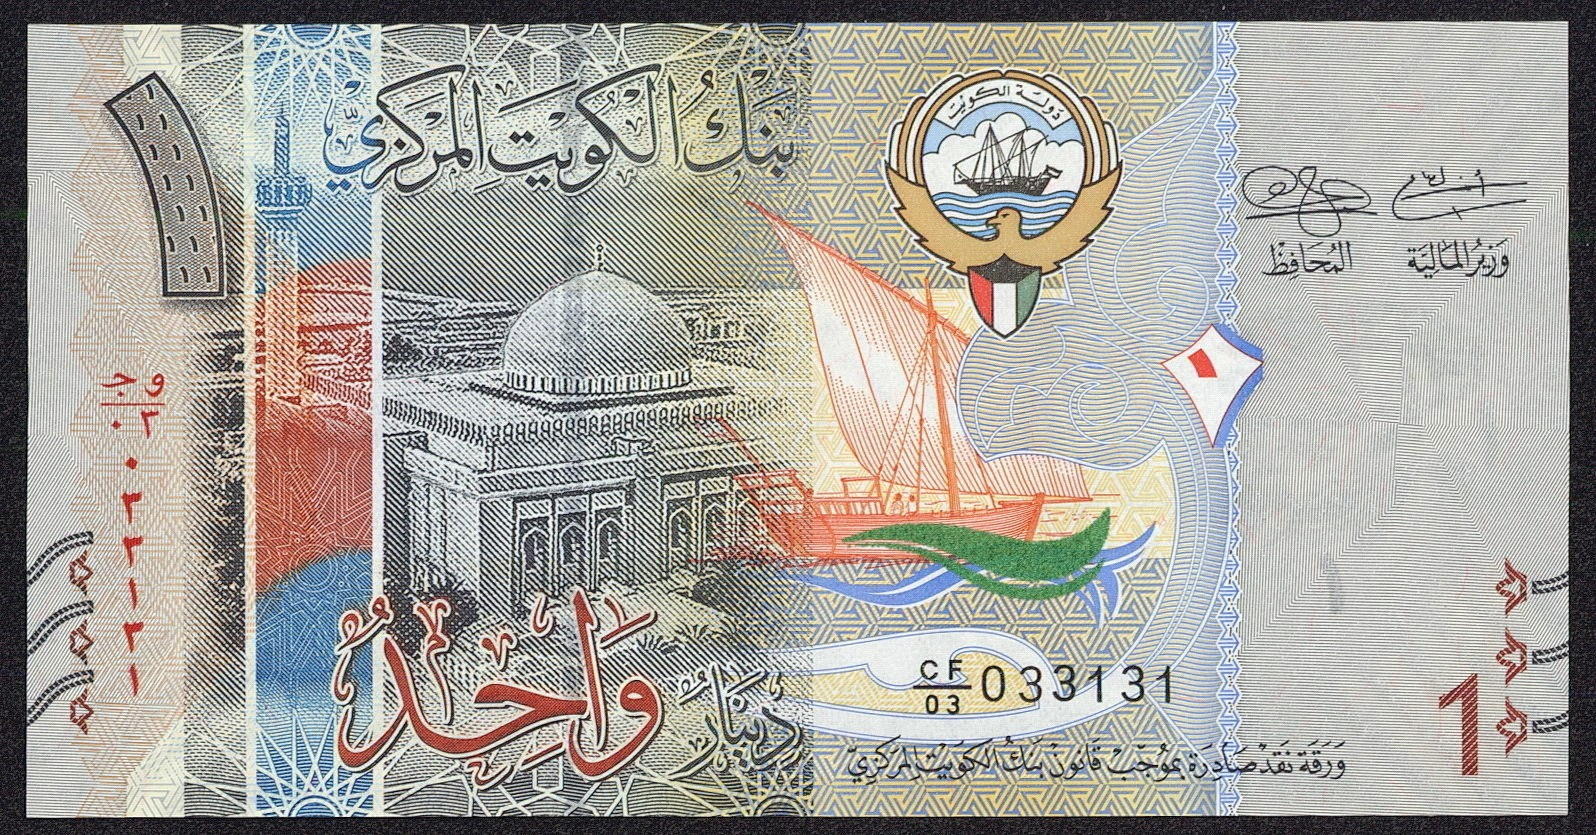 Kuwait New Banknotes 1 Dinar bank note 2014